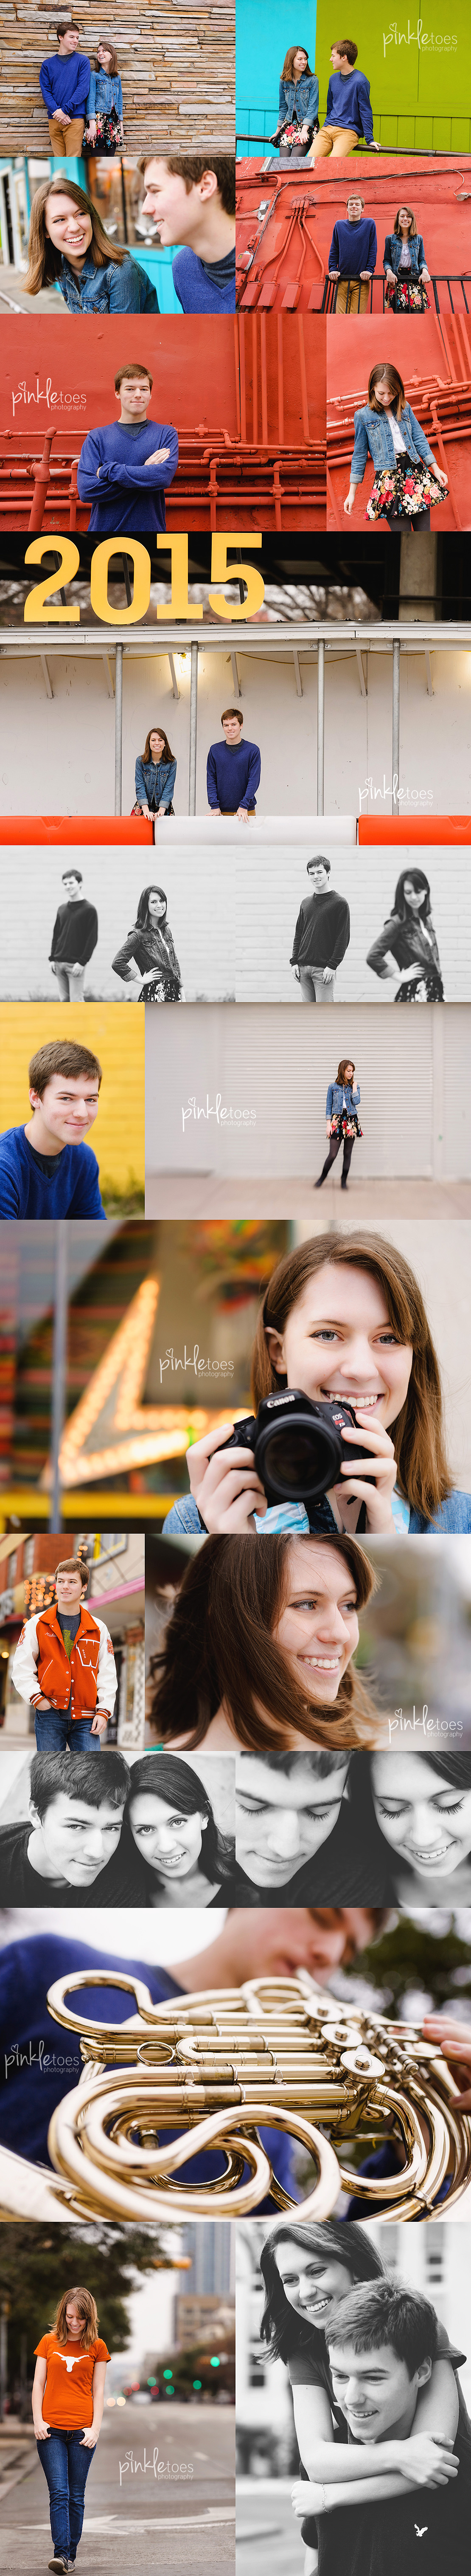 austin-twin-brother-sister-high-school-senior-portraits-downtown-city-urban-south-congress-capitol